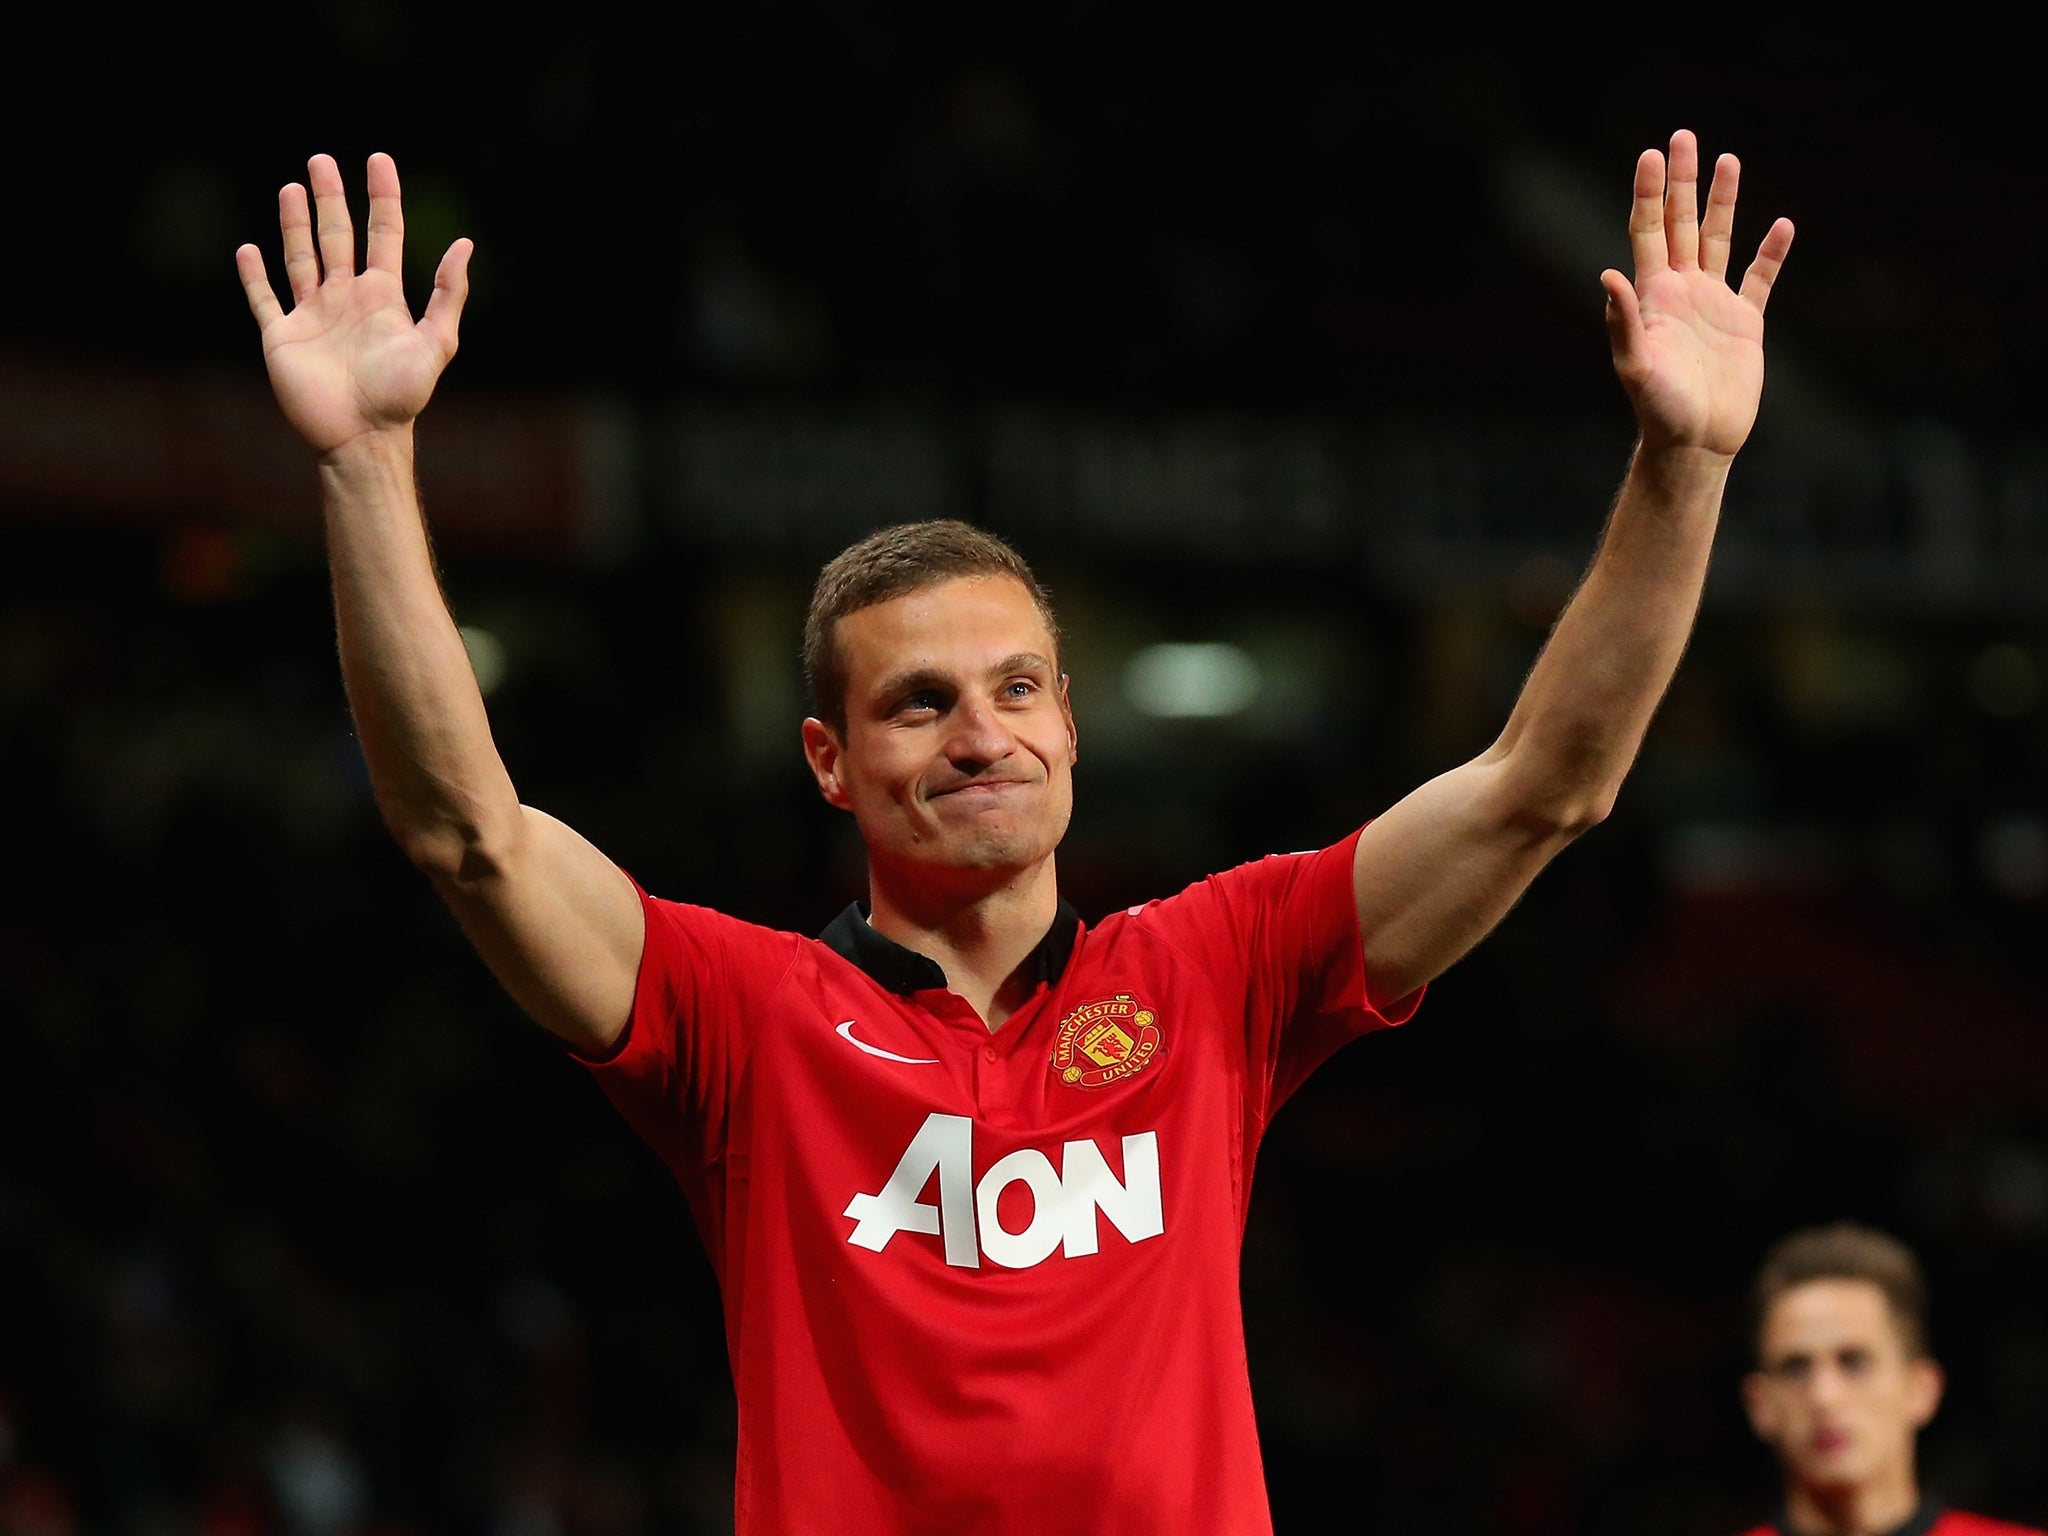 Nemanja Vidic returns to Manchester United in an ambassadorial